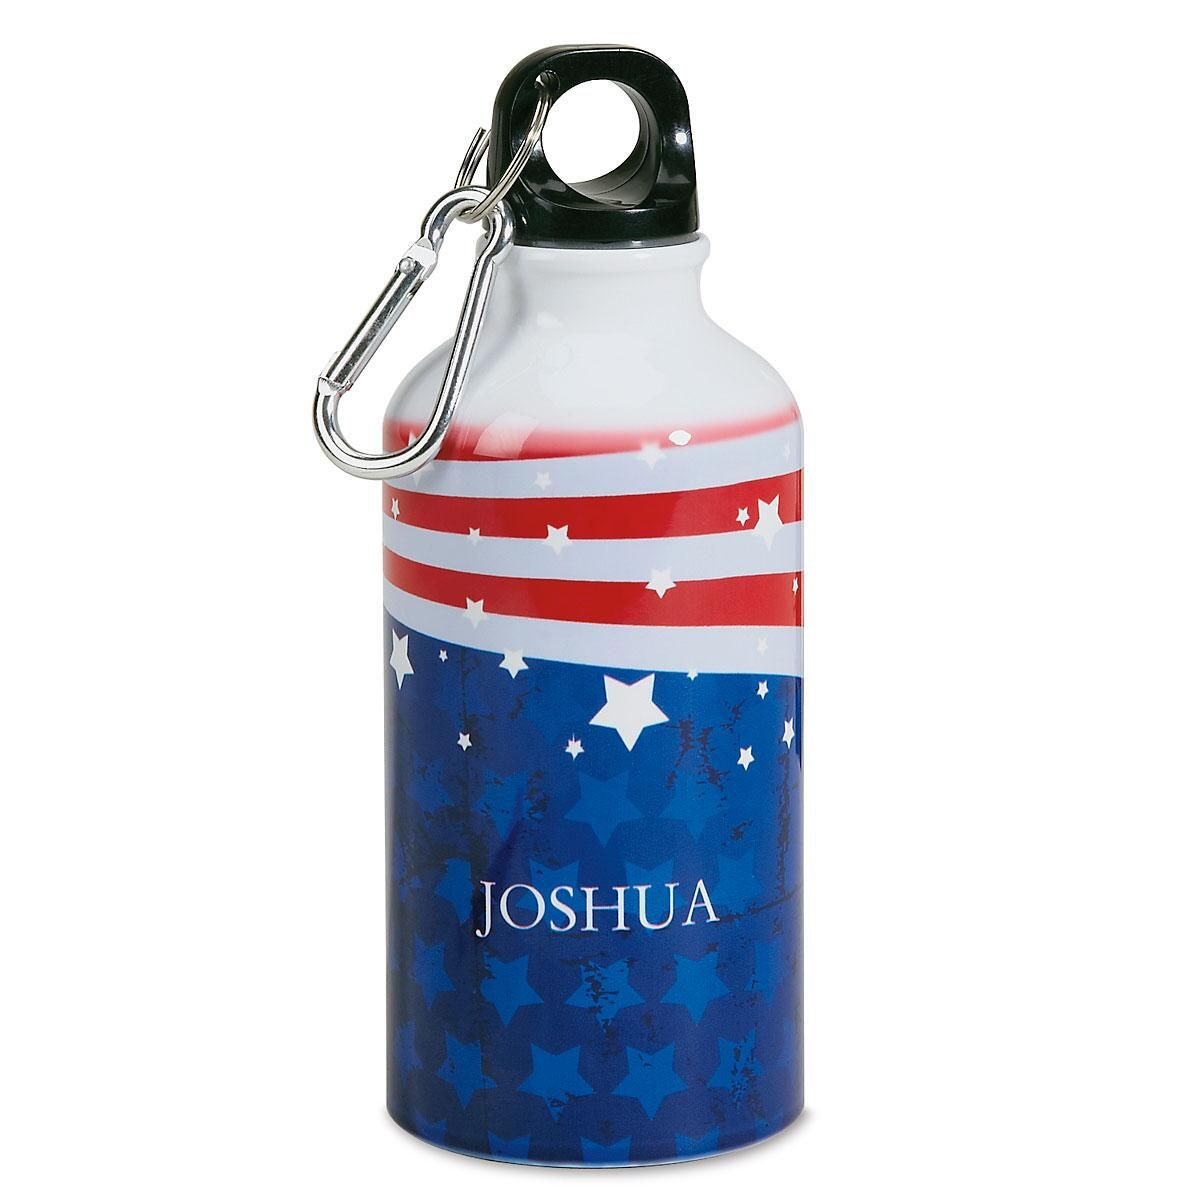 Patriotic Personalized Kids' Water Bottle